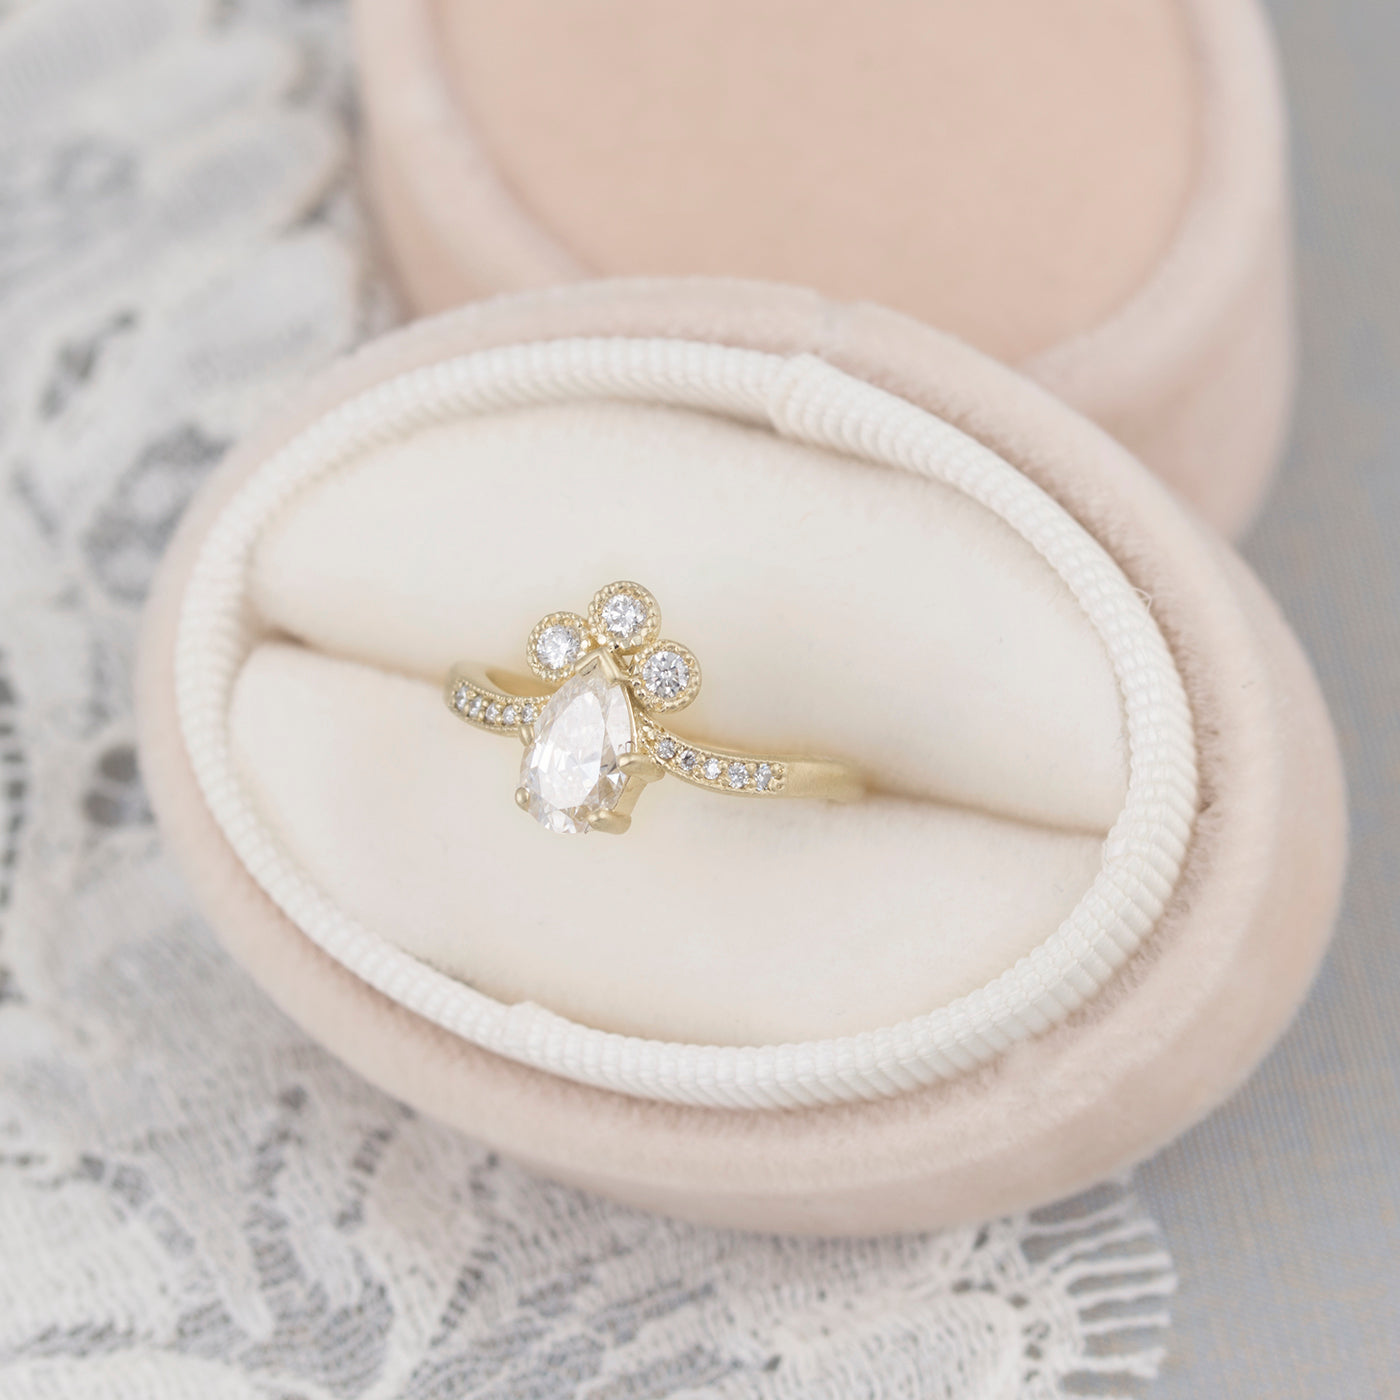 ring closed topic wedding what for pear band rings with shaped a